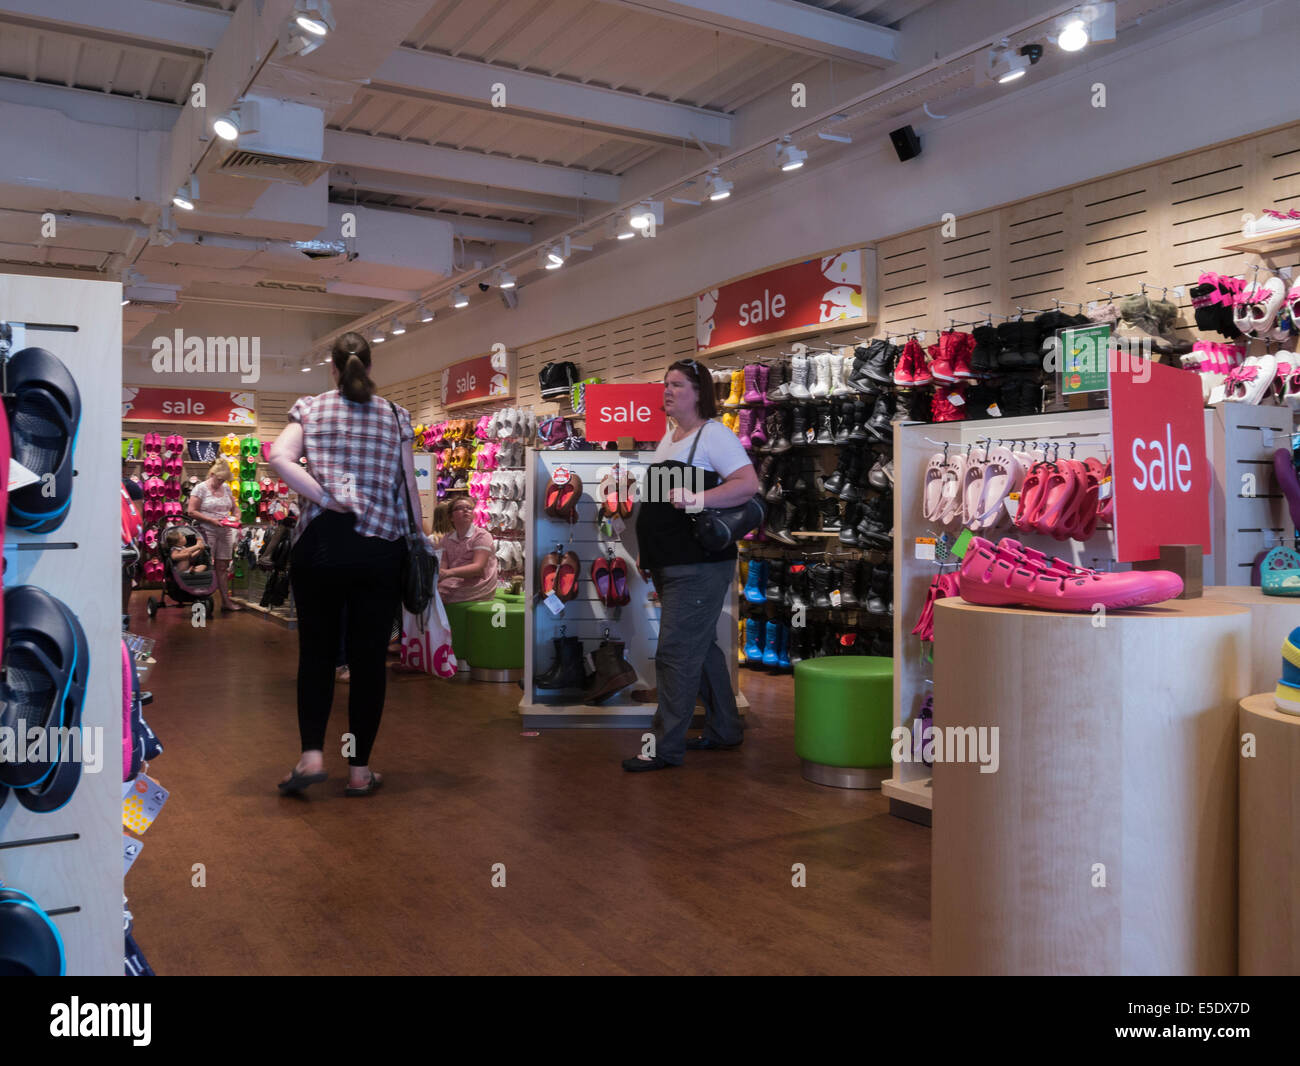 Customers in store selling Croc products with sale on - Stock Image